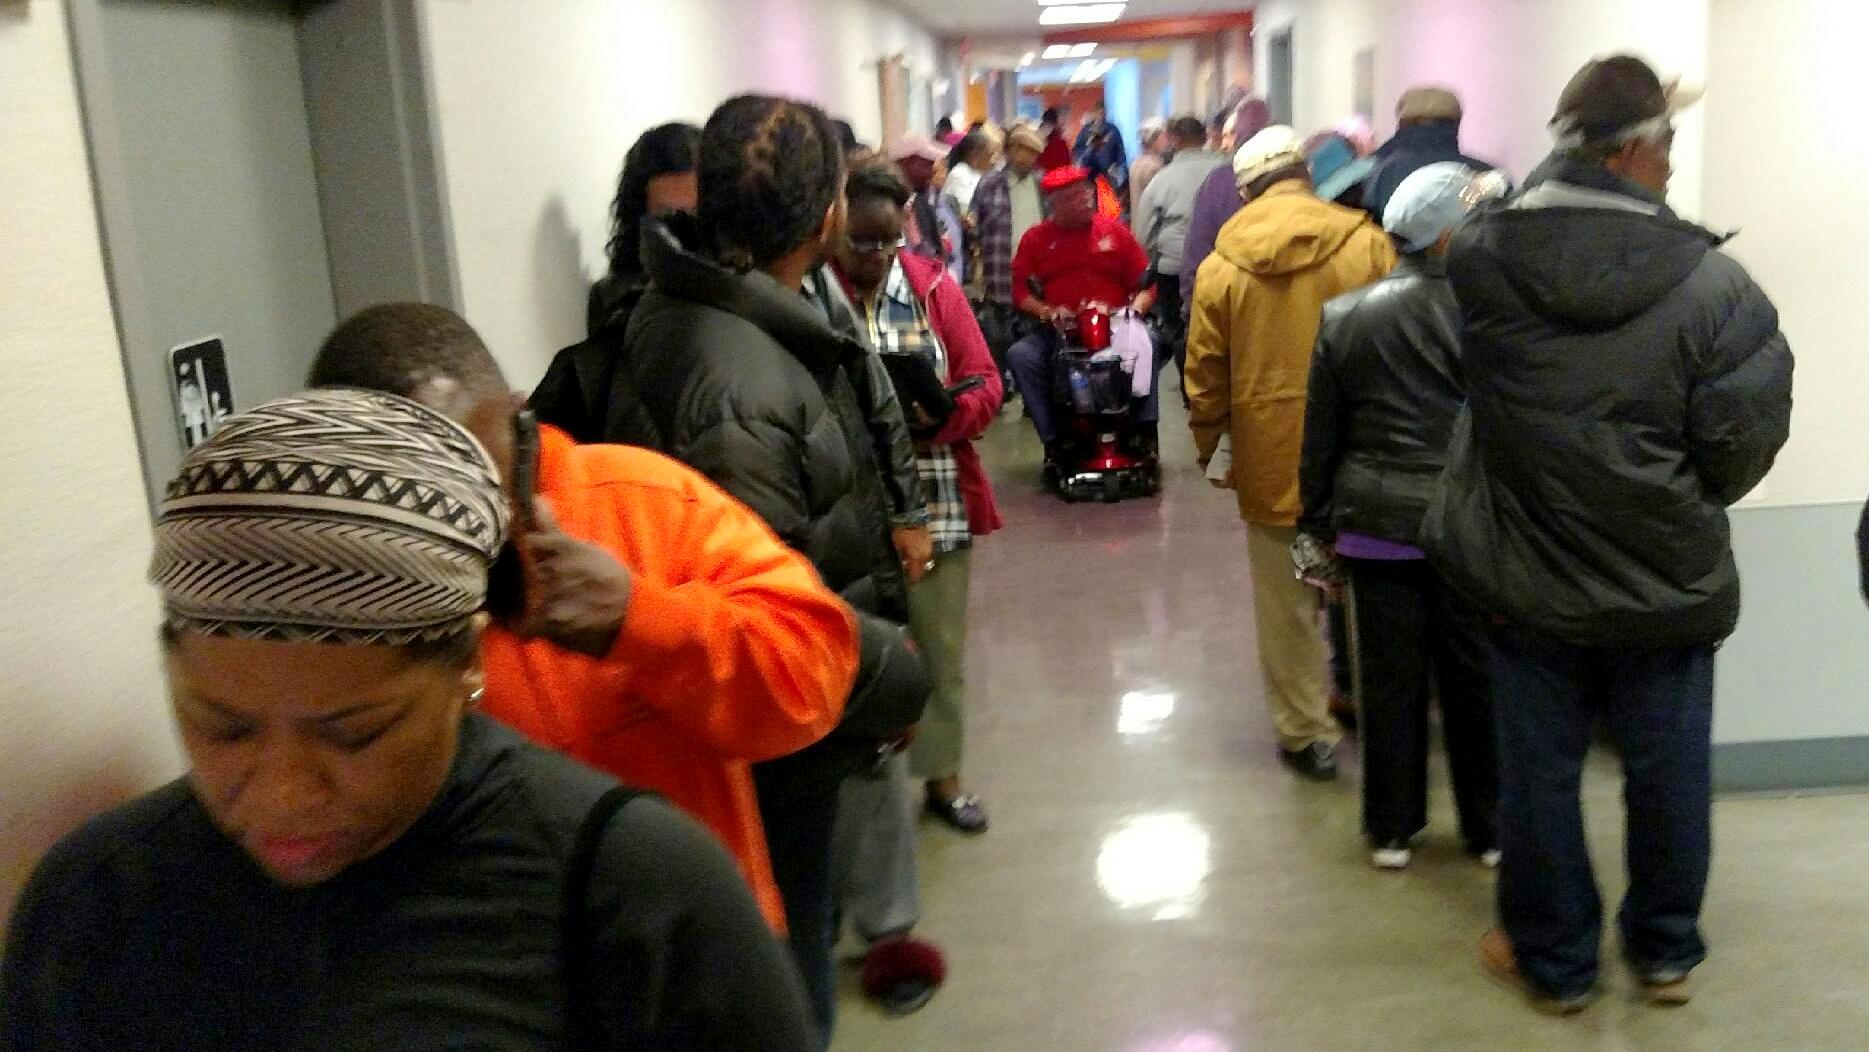 As with the primary, early voting in Baltimore for the General Election appears heavy. (Francine Halvorsen)